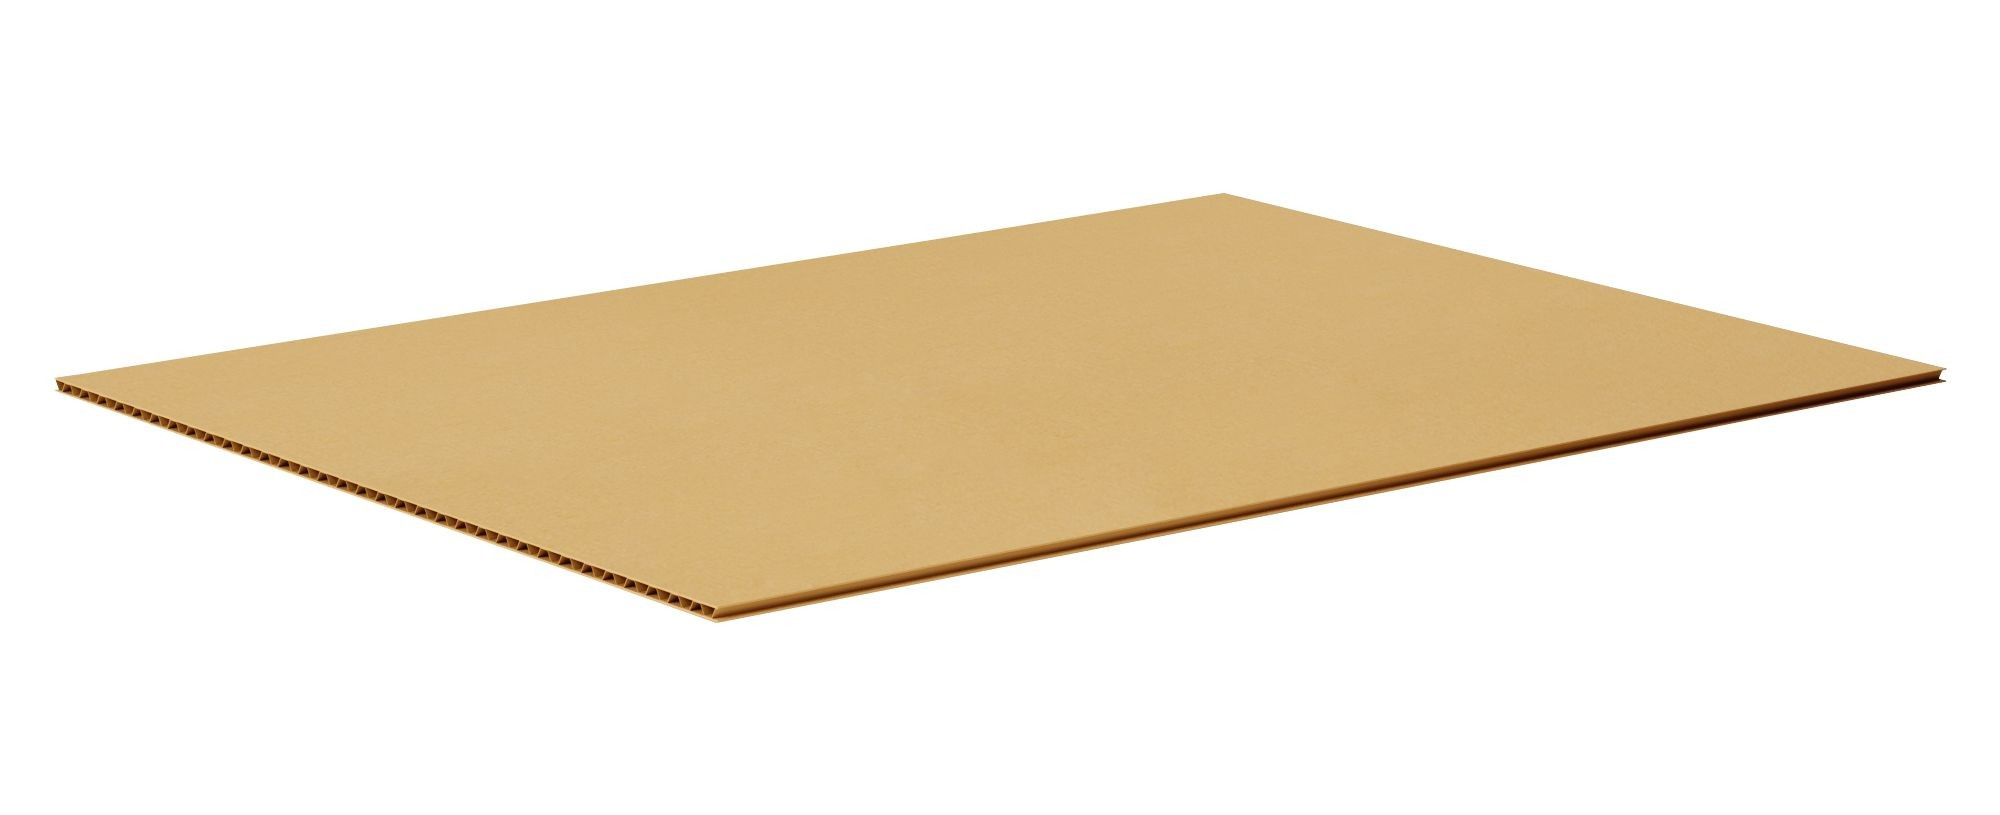 TOTALPACK® Ultra-Strong Corrugated Pads, Cardboard Corrugated